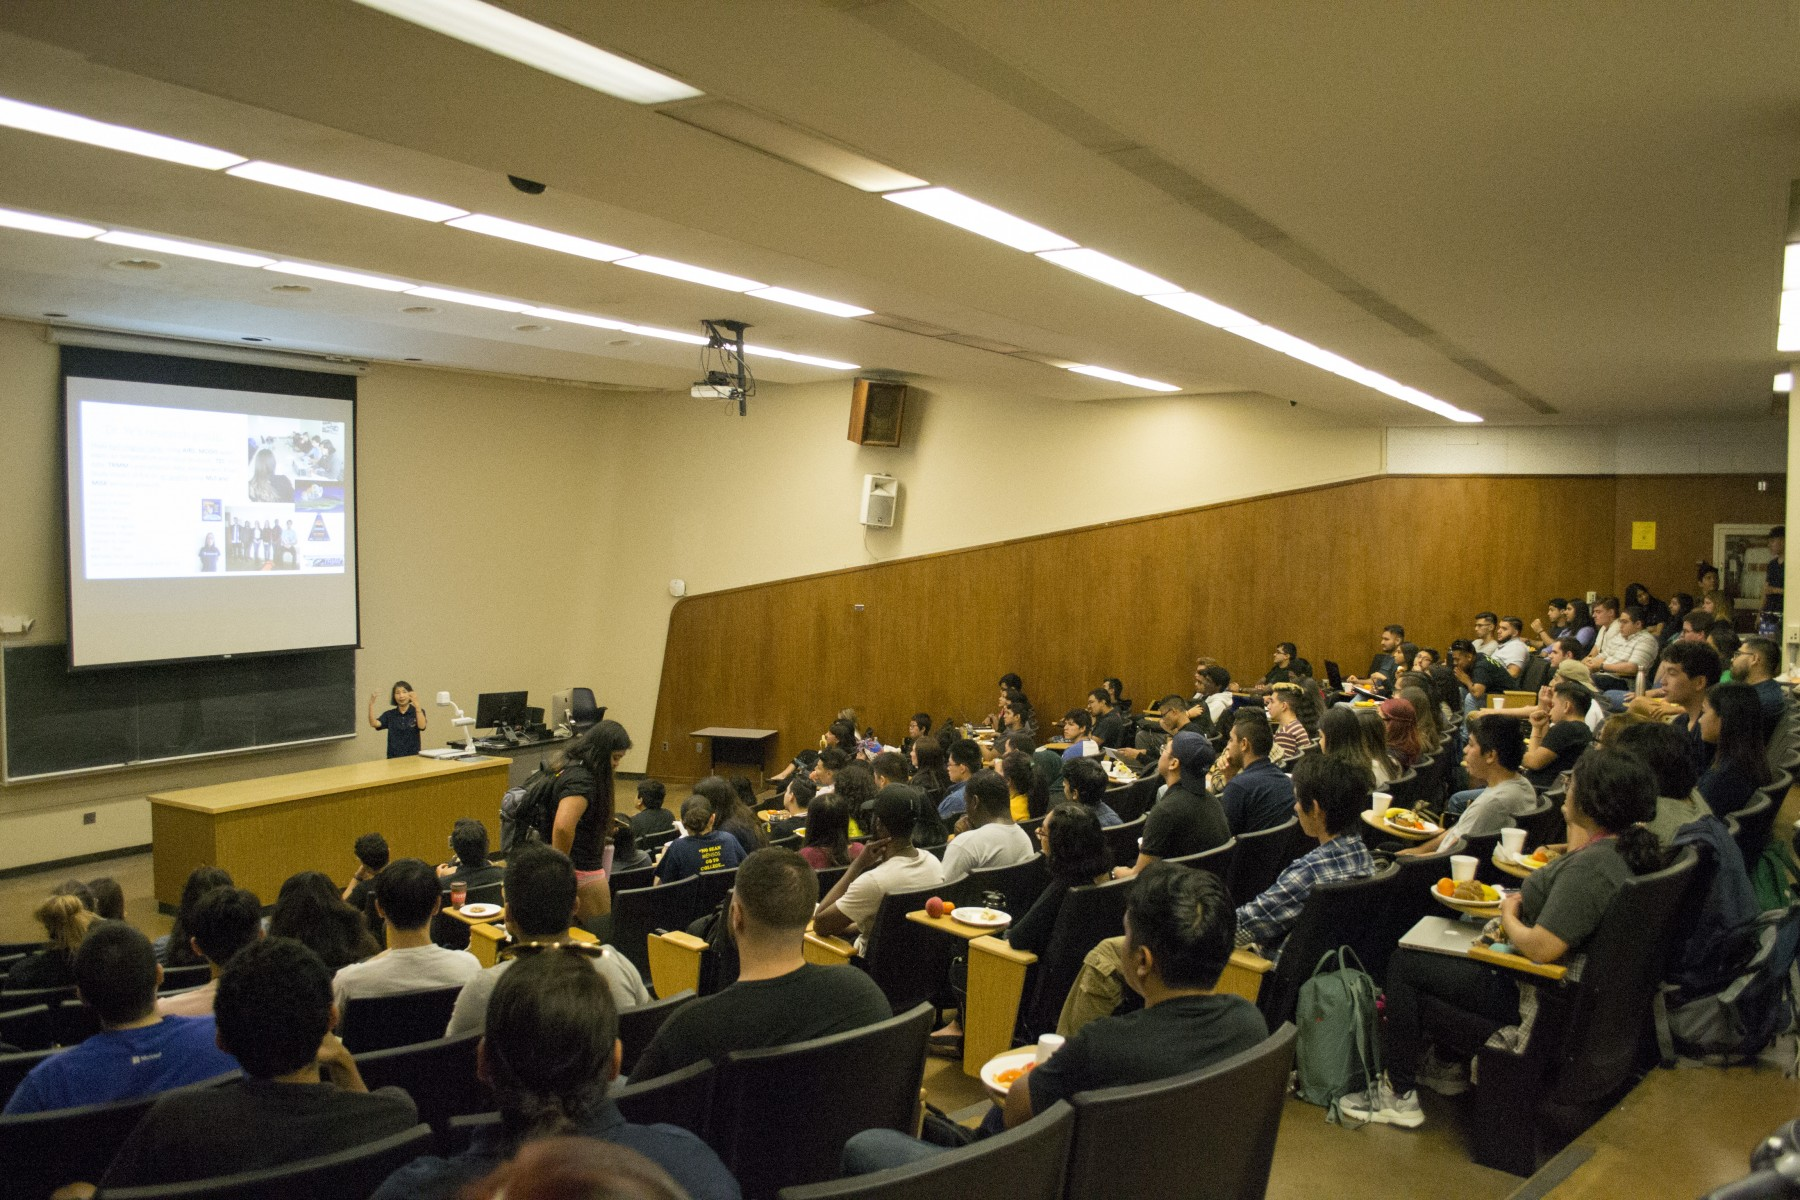 DIRECT-STEM welcomed over 140 students at our 2019 Annual Kick-off Event